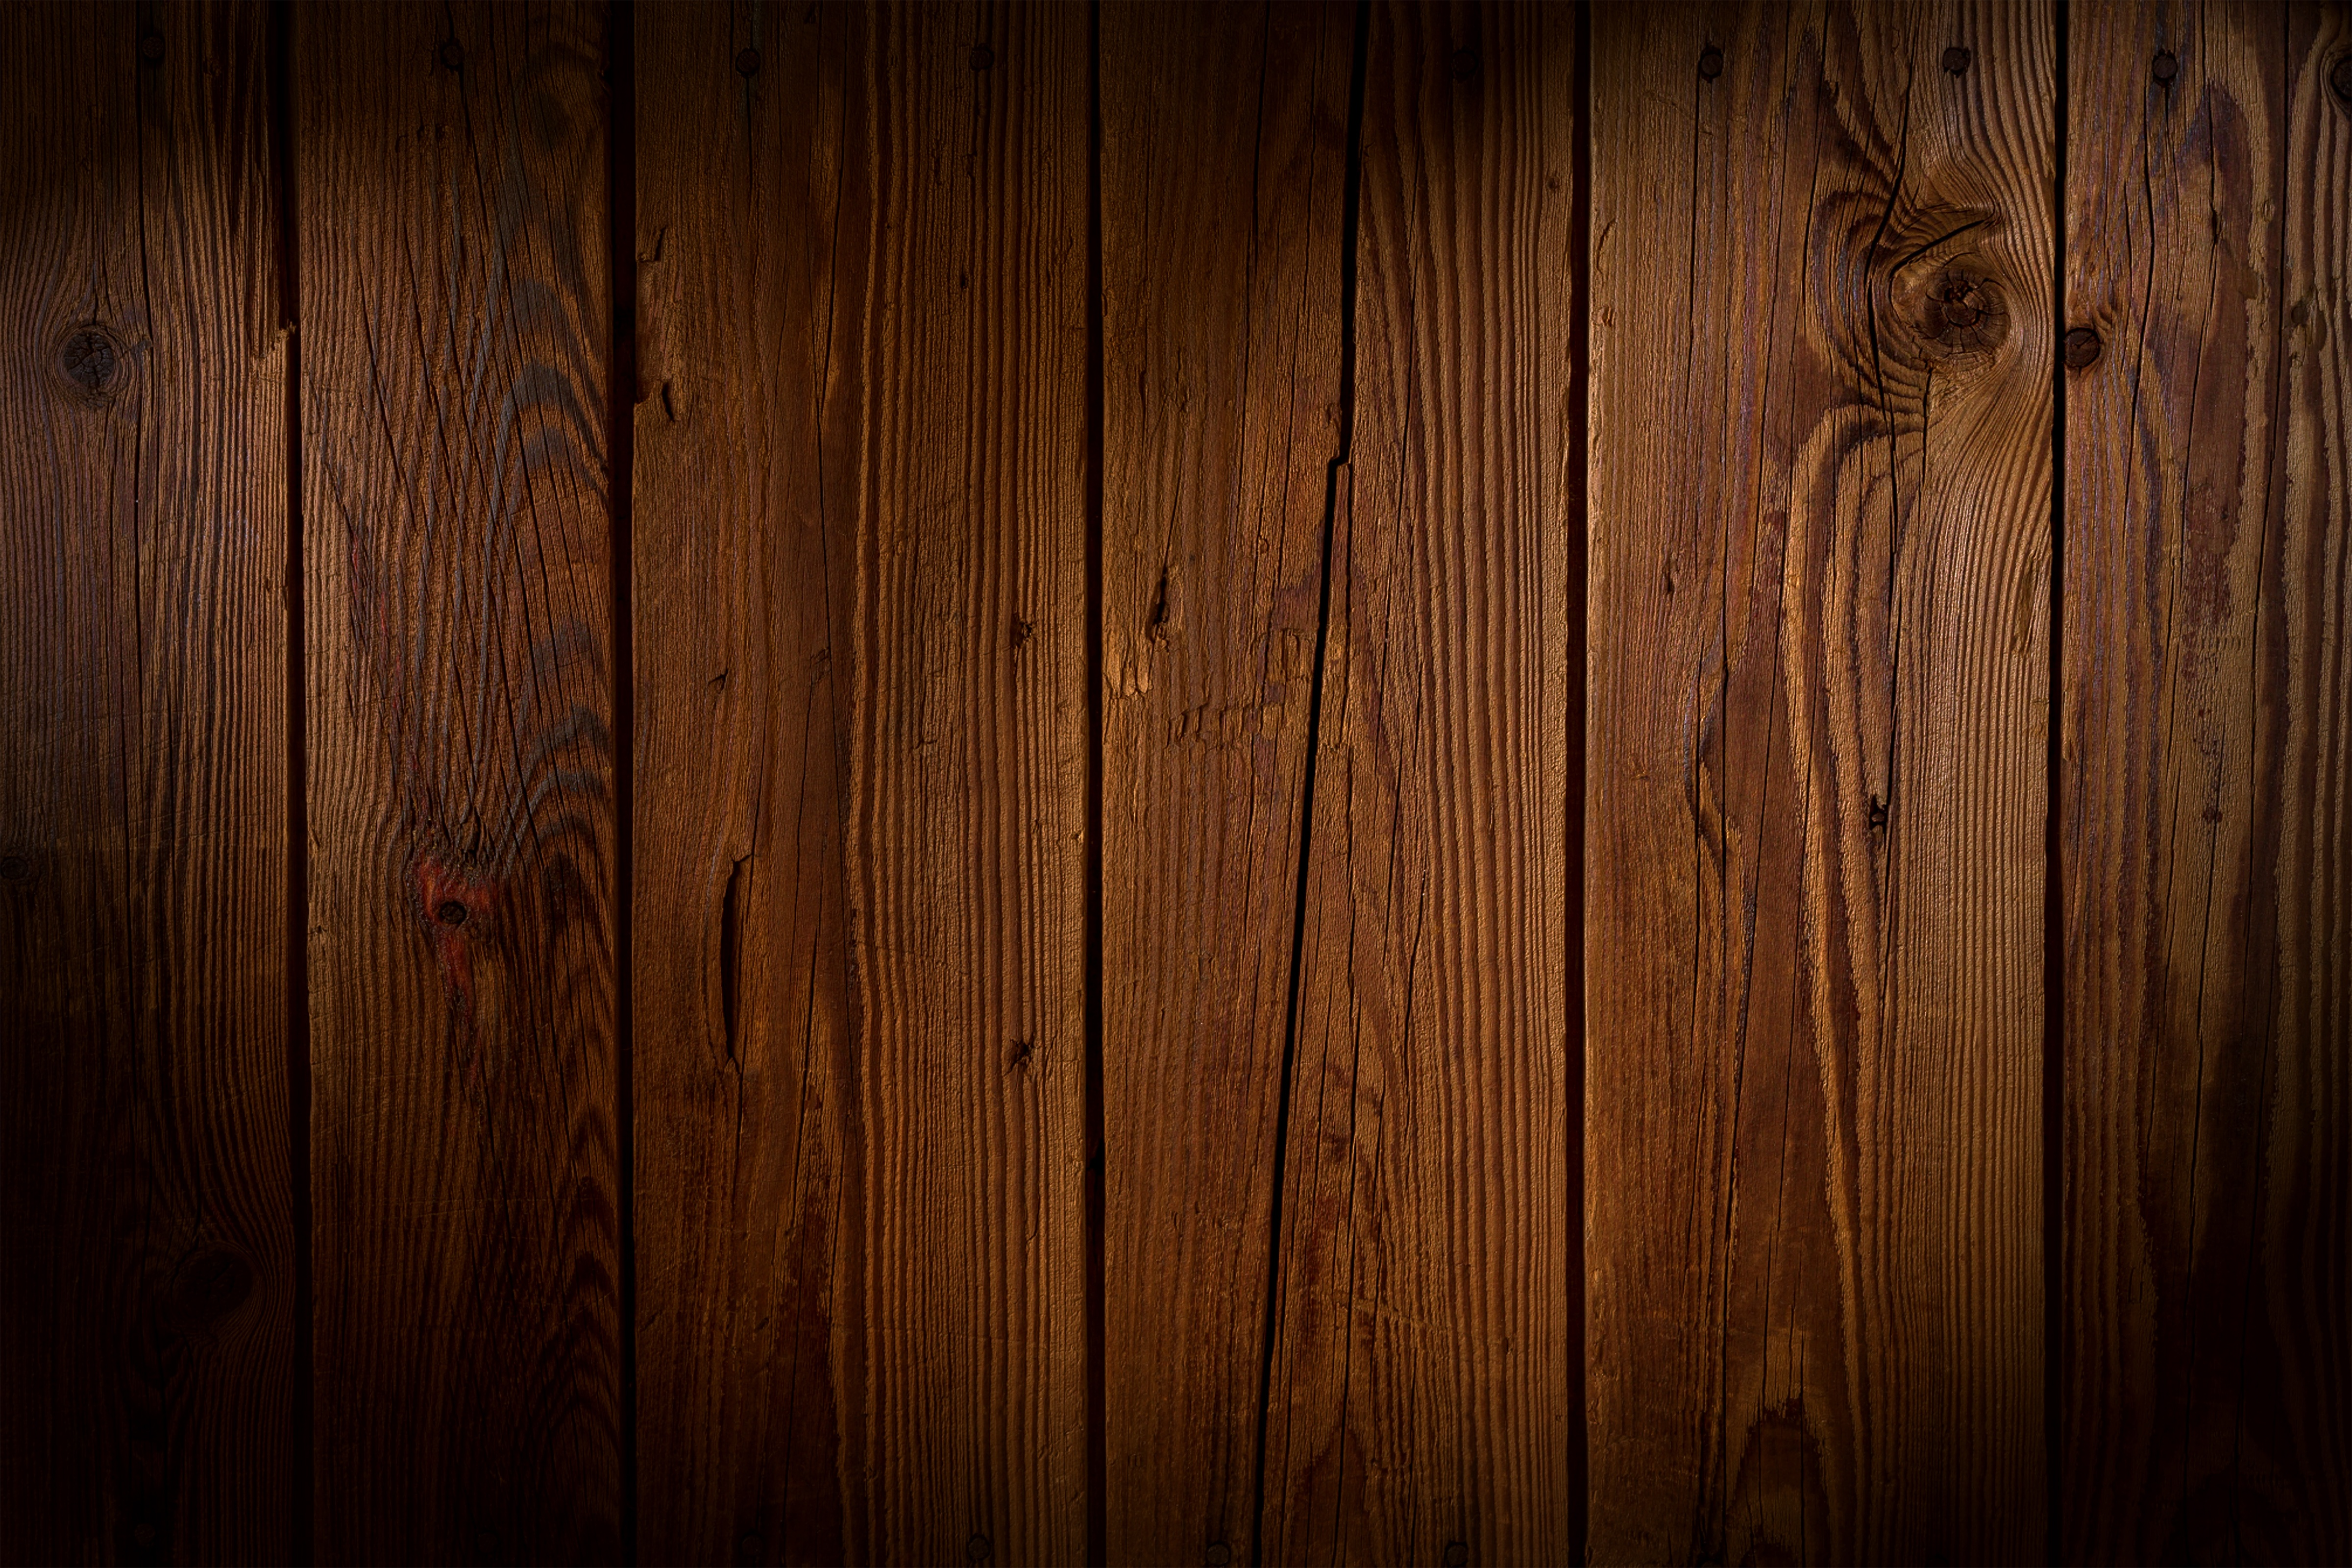 Wood Plank Background ~ Macro shot of wooden planks · free stock photo